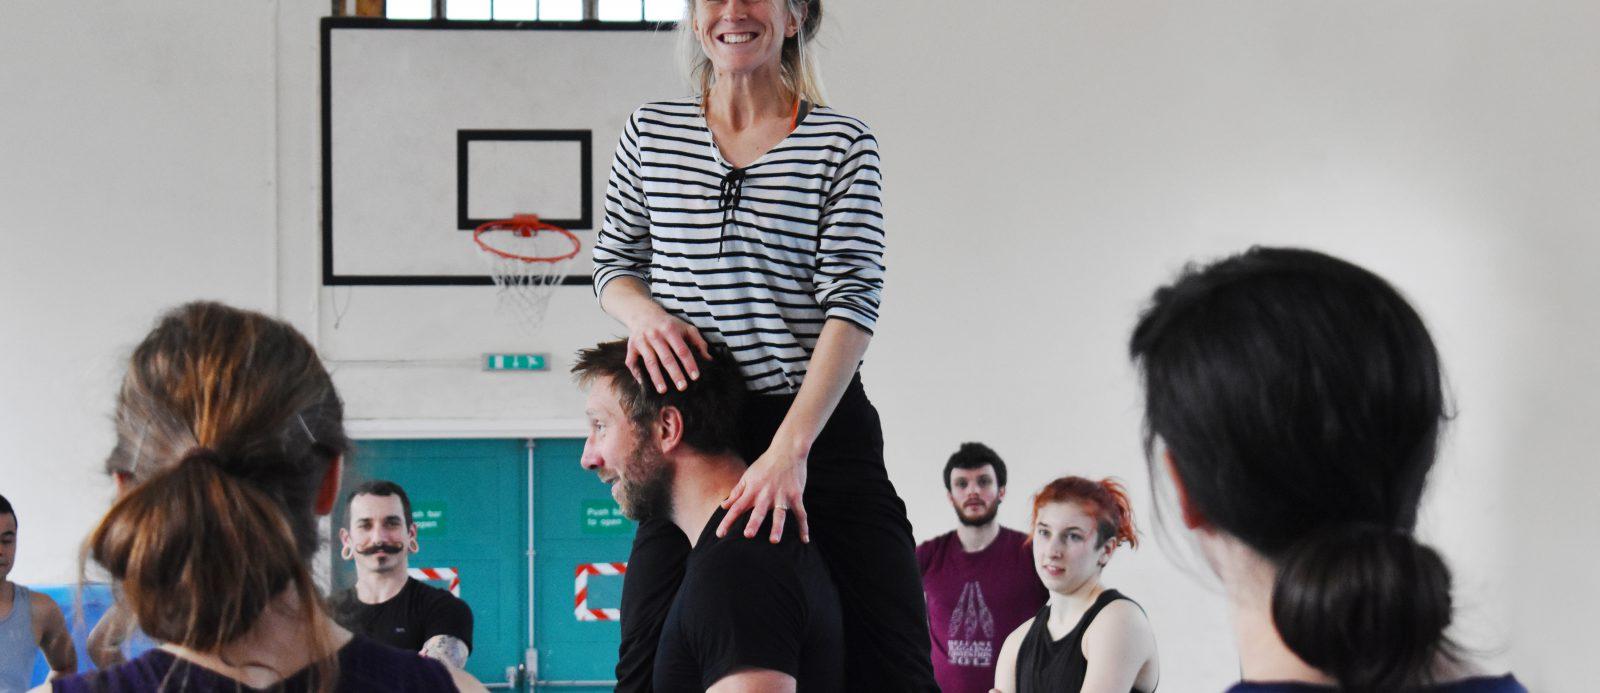 student balances on shoulder of another during circus class